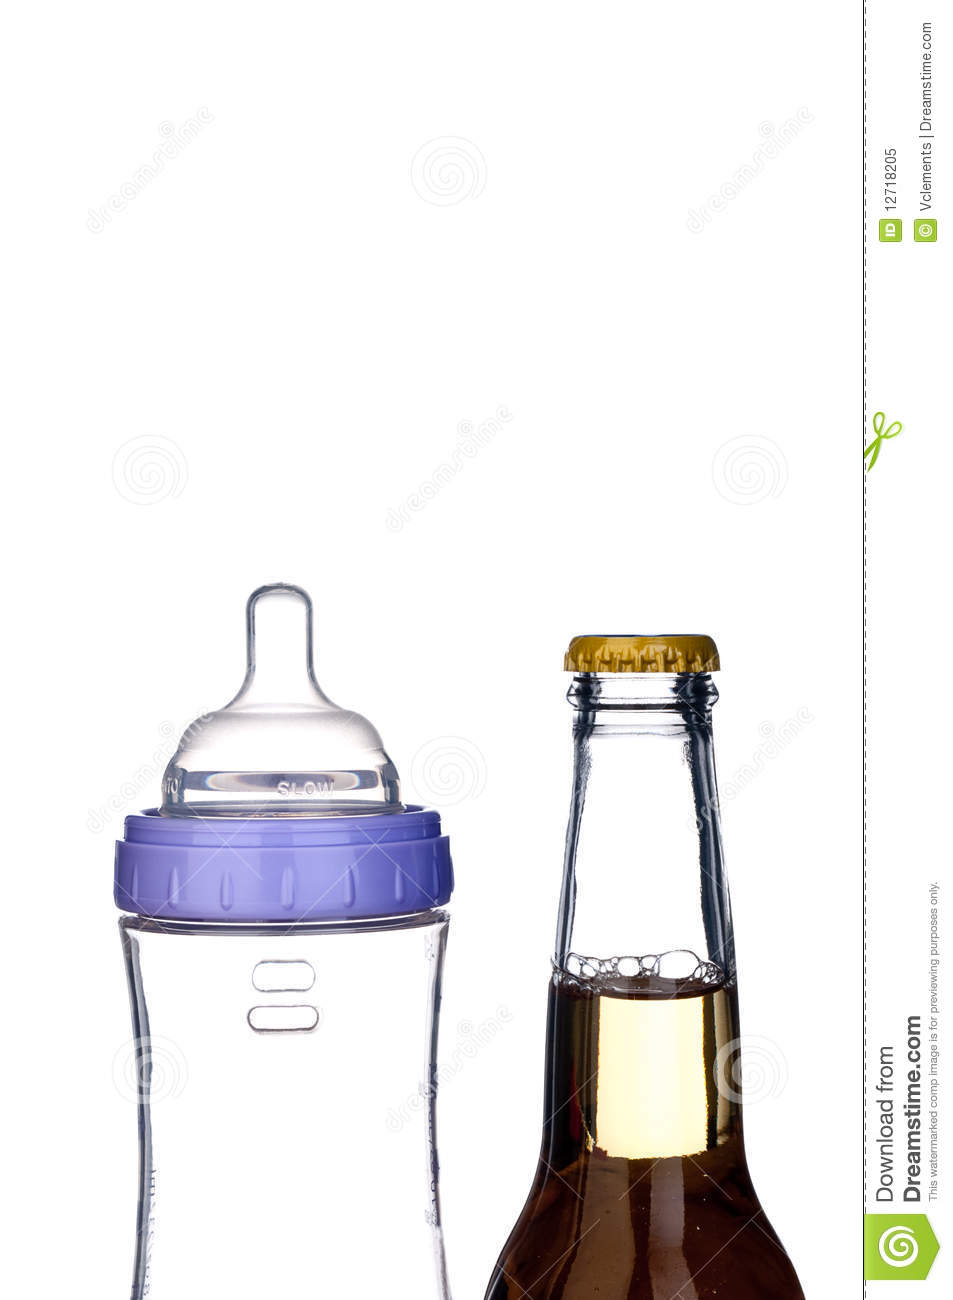 Baby Bottle And Beer Bottle On White Stock Image.